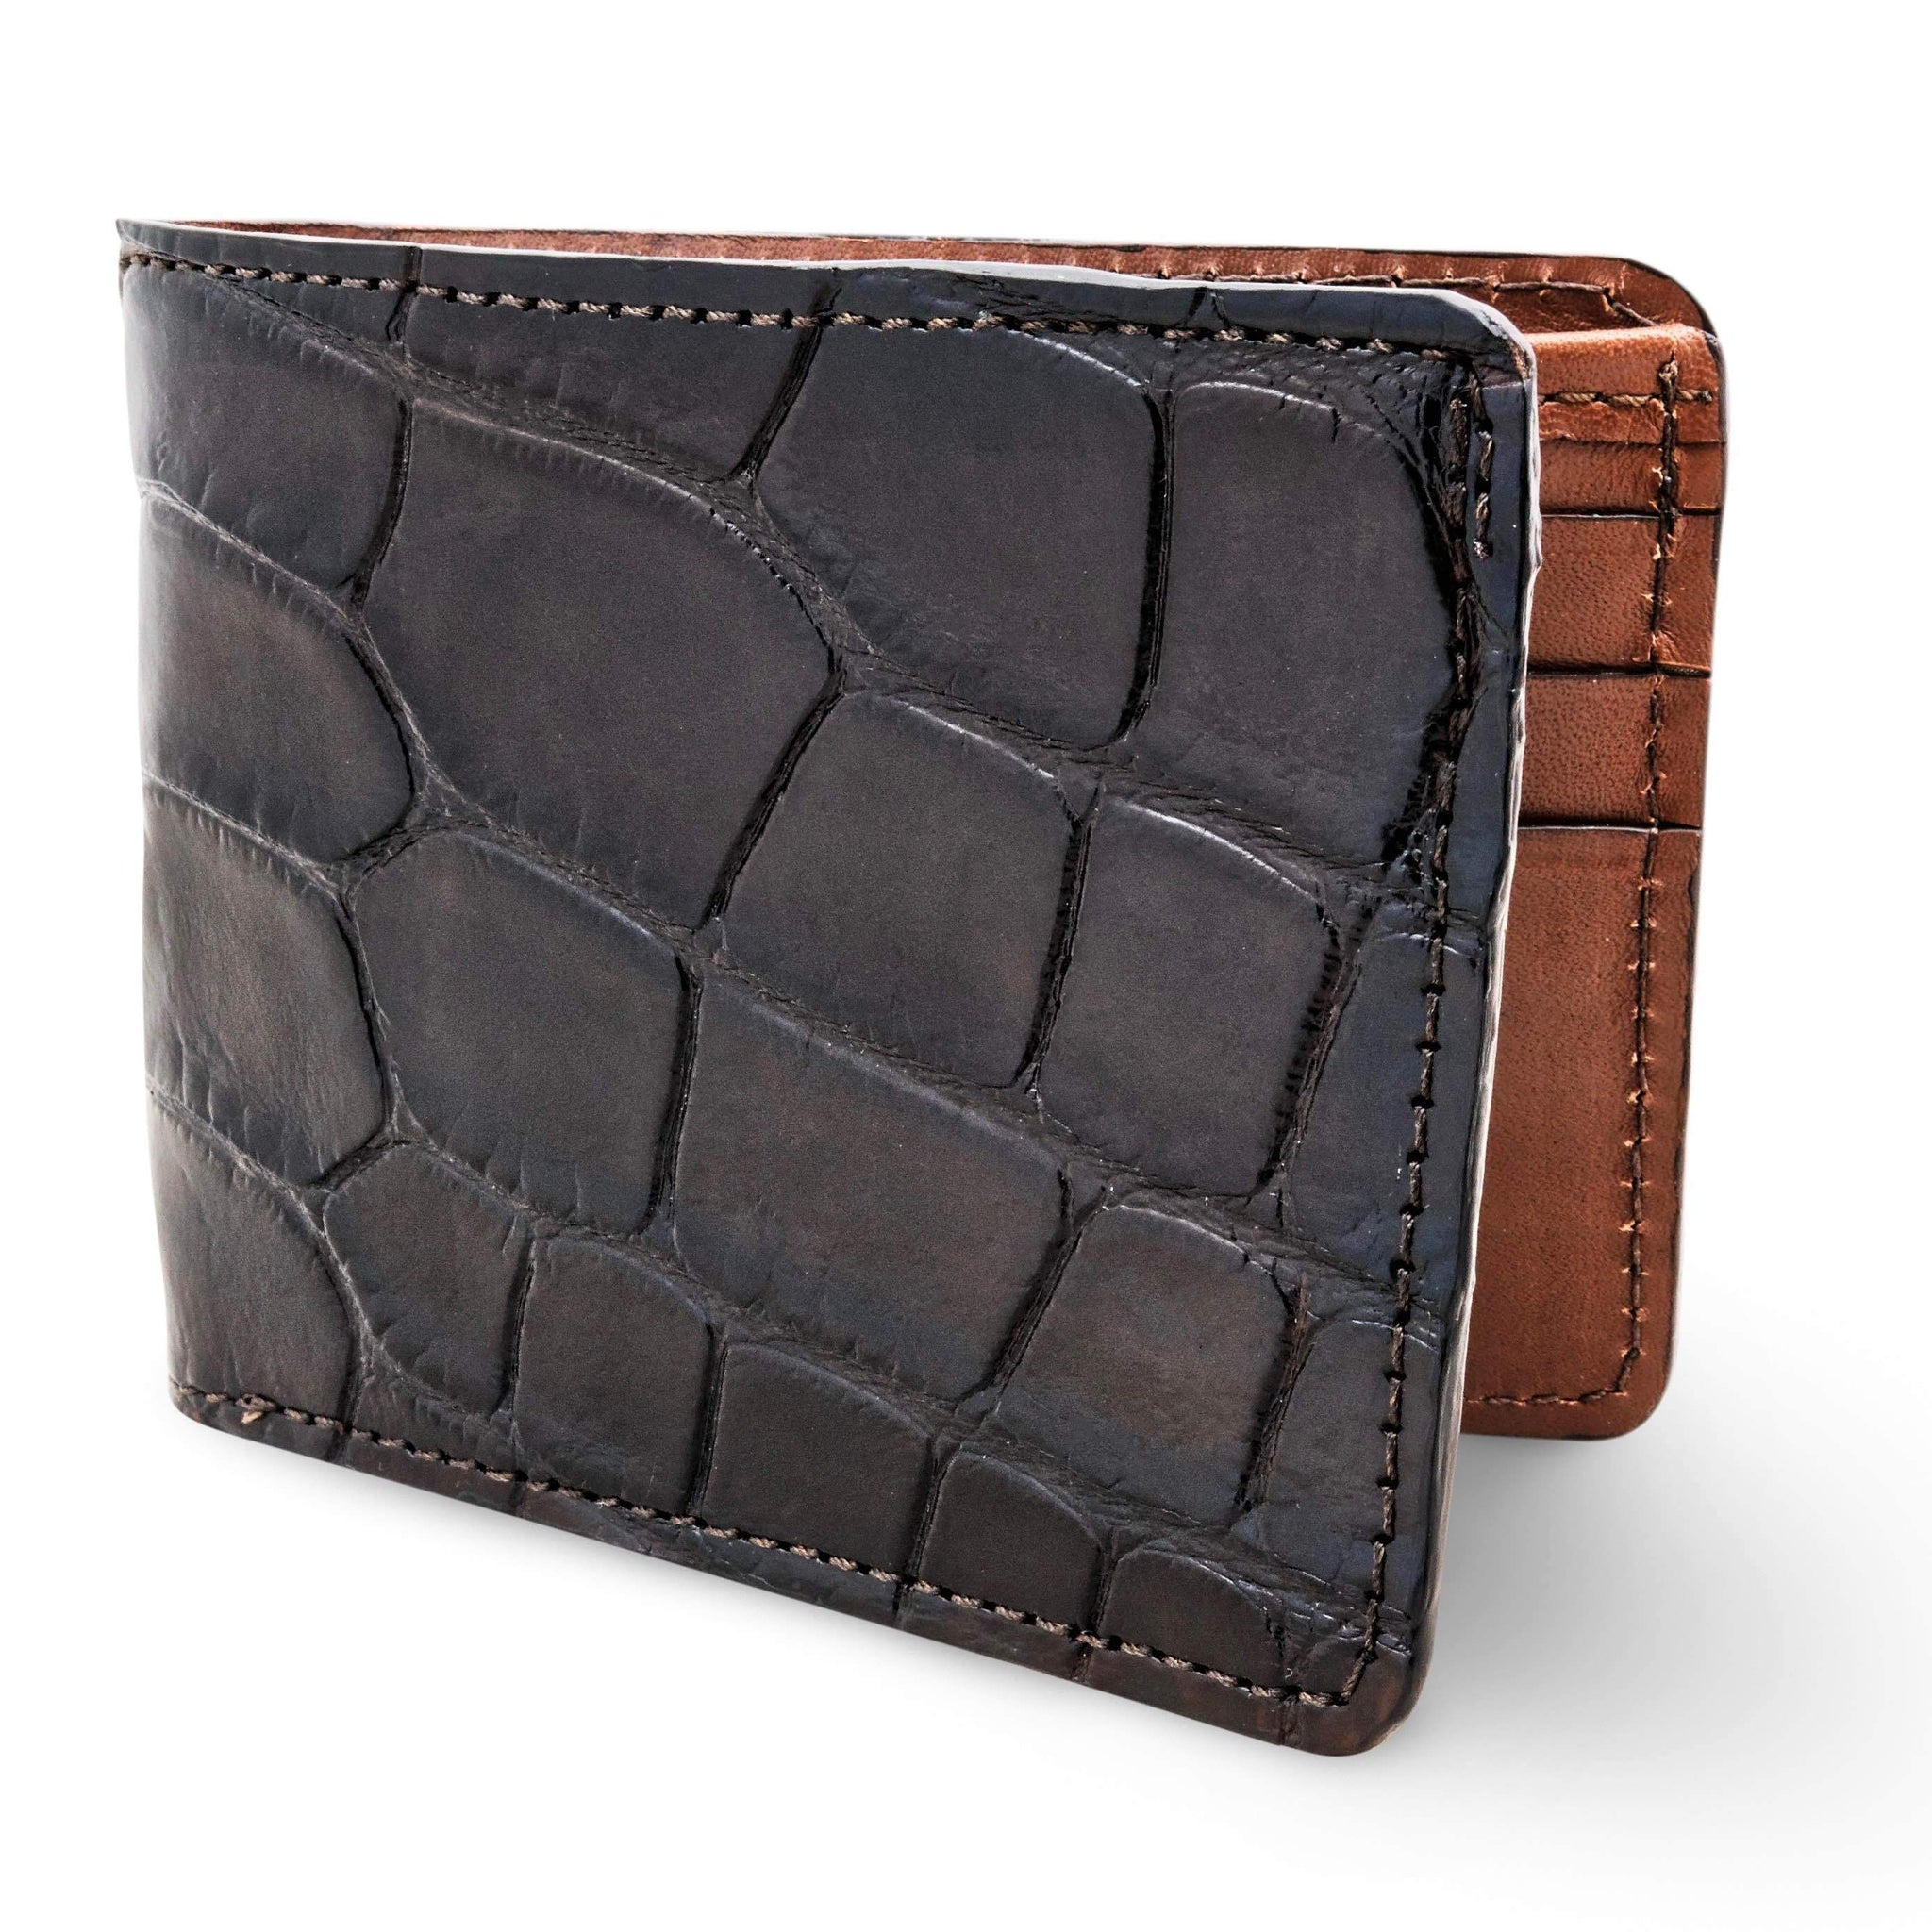 Black alligator wallet for men